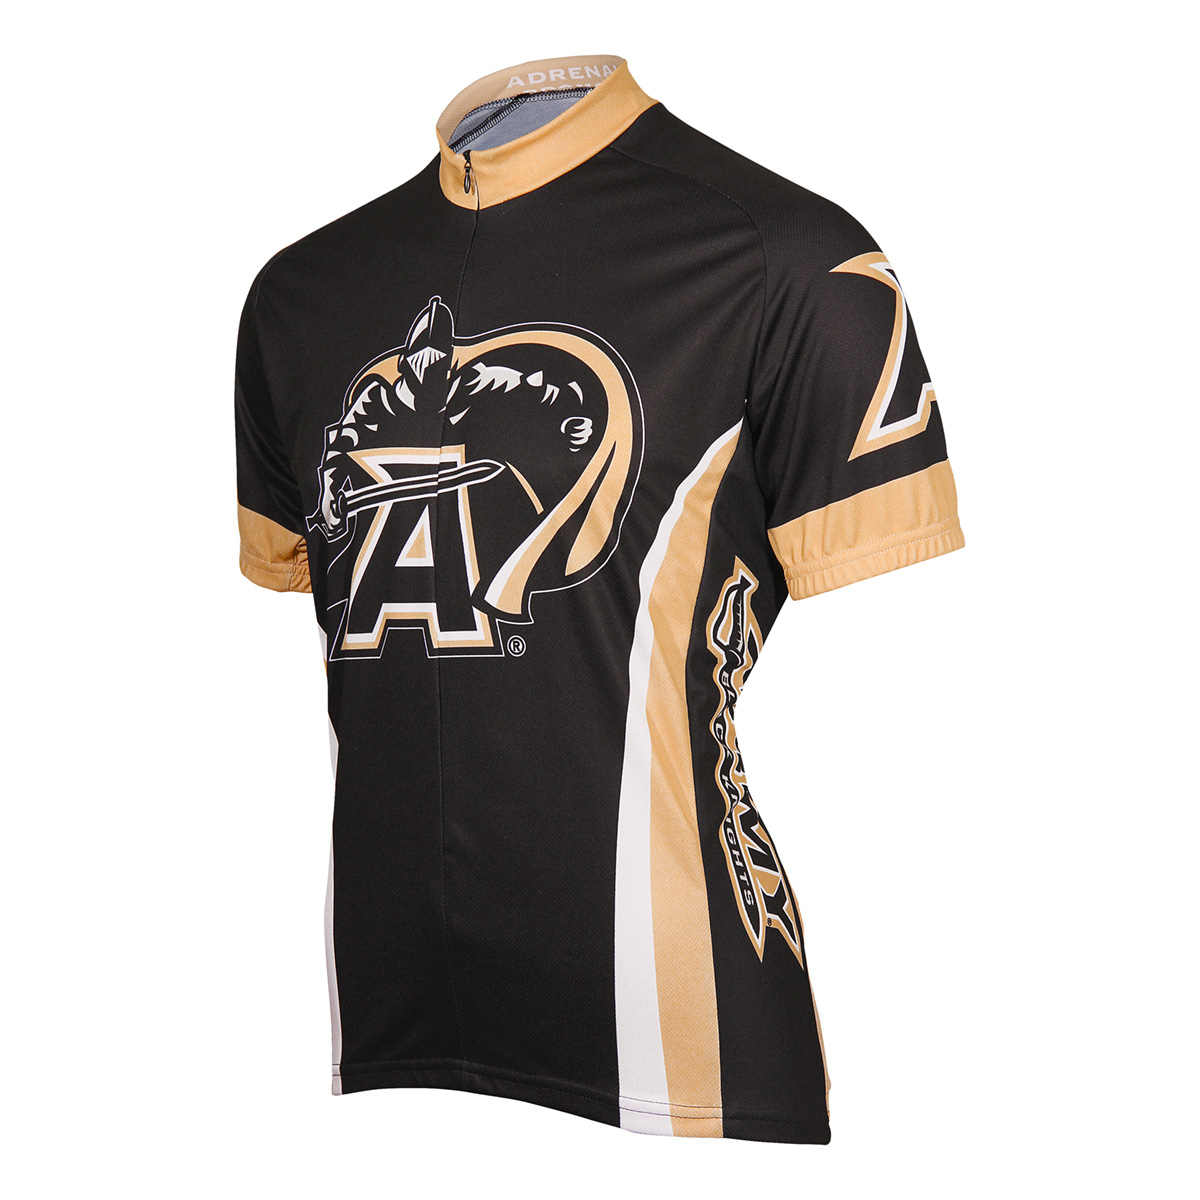 Adrenaline Promotions Army Black Knights Cycling Jersey